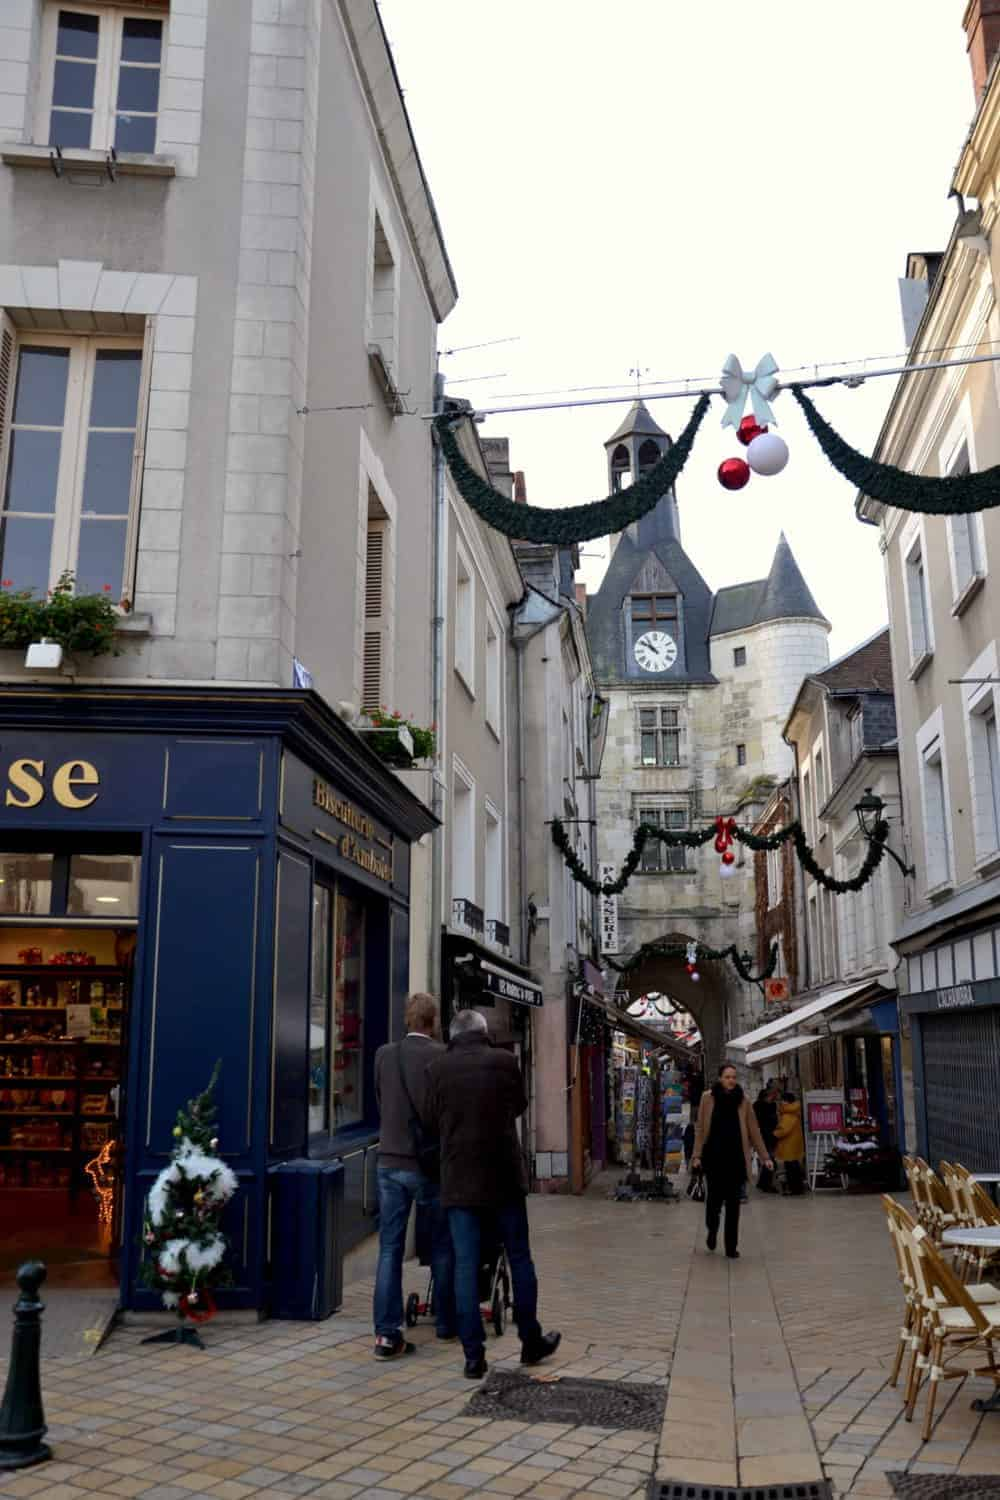 Restaurants in Chateaux Amboise